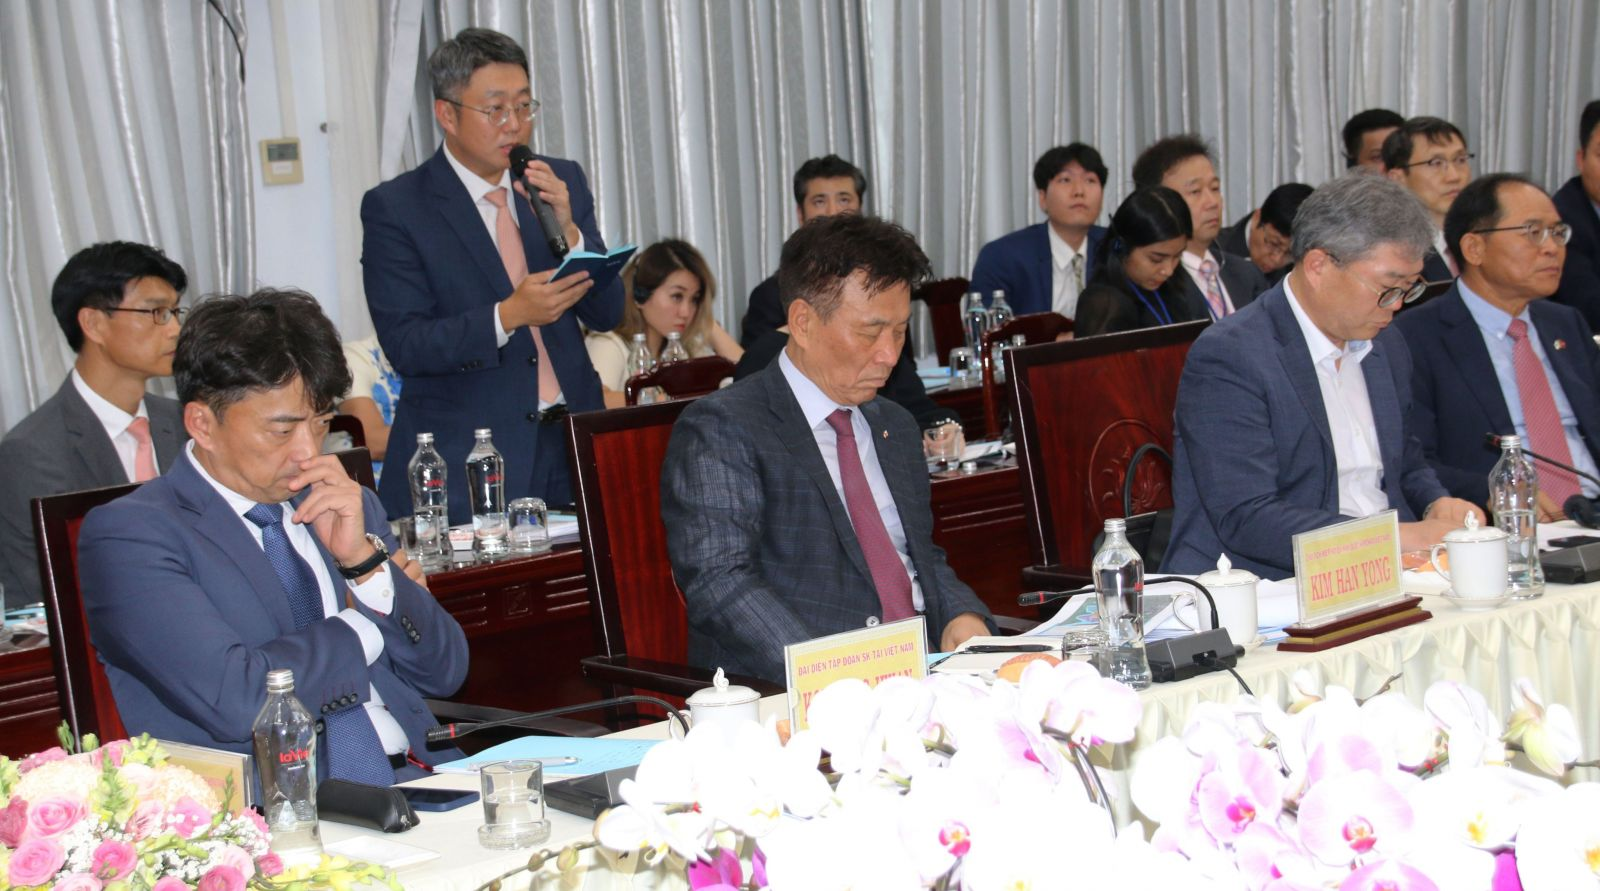 The working session helps the provincial leaders and the delegation of Korean officials and businesses to discuss more about investment needs